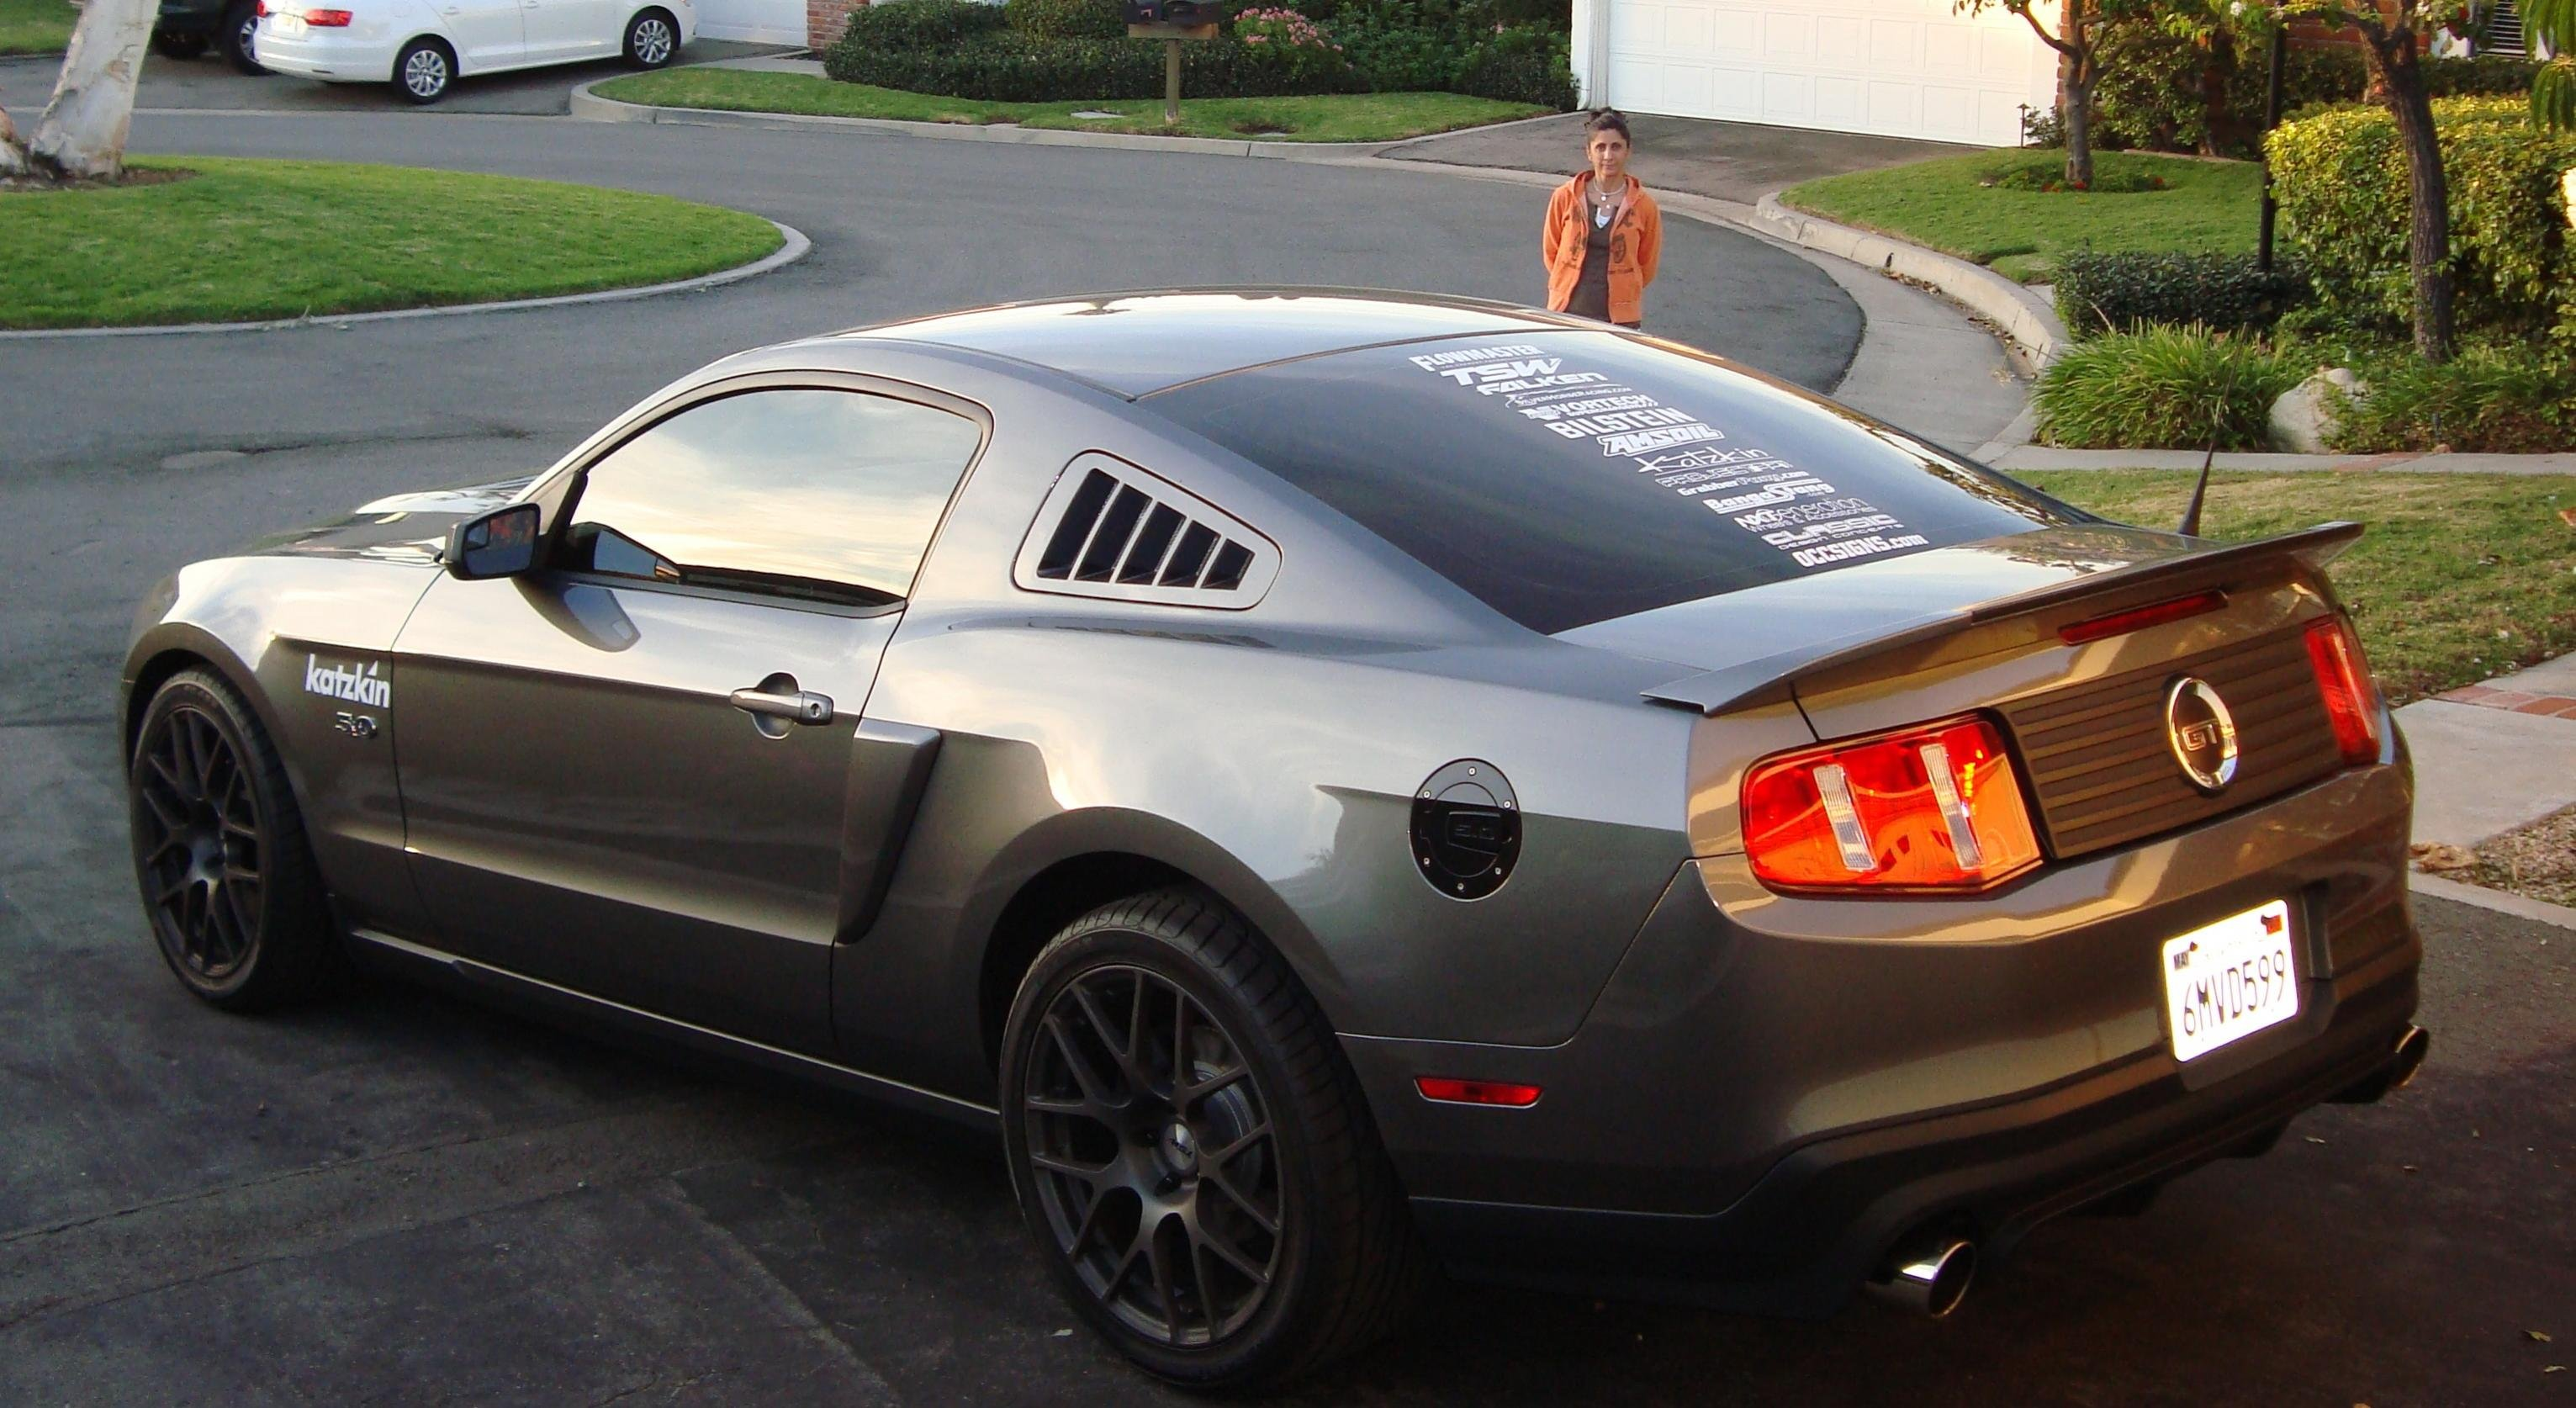 Forum Ford Mustang V8 Ide Dimage De Voiture 2011 Shelby Gt500 Wiring Diagram Hood Scoop Windows Louvers